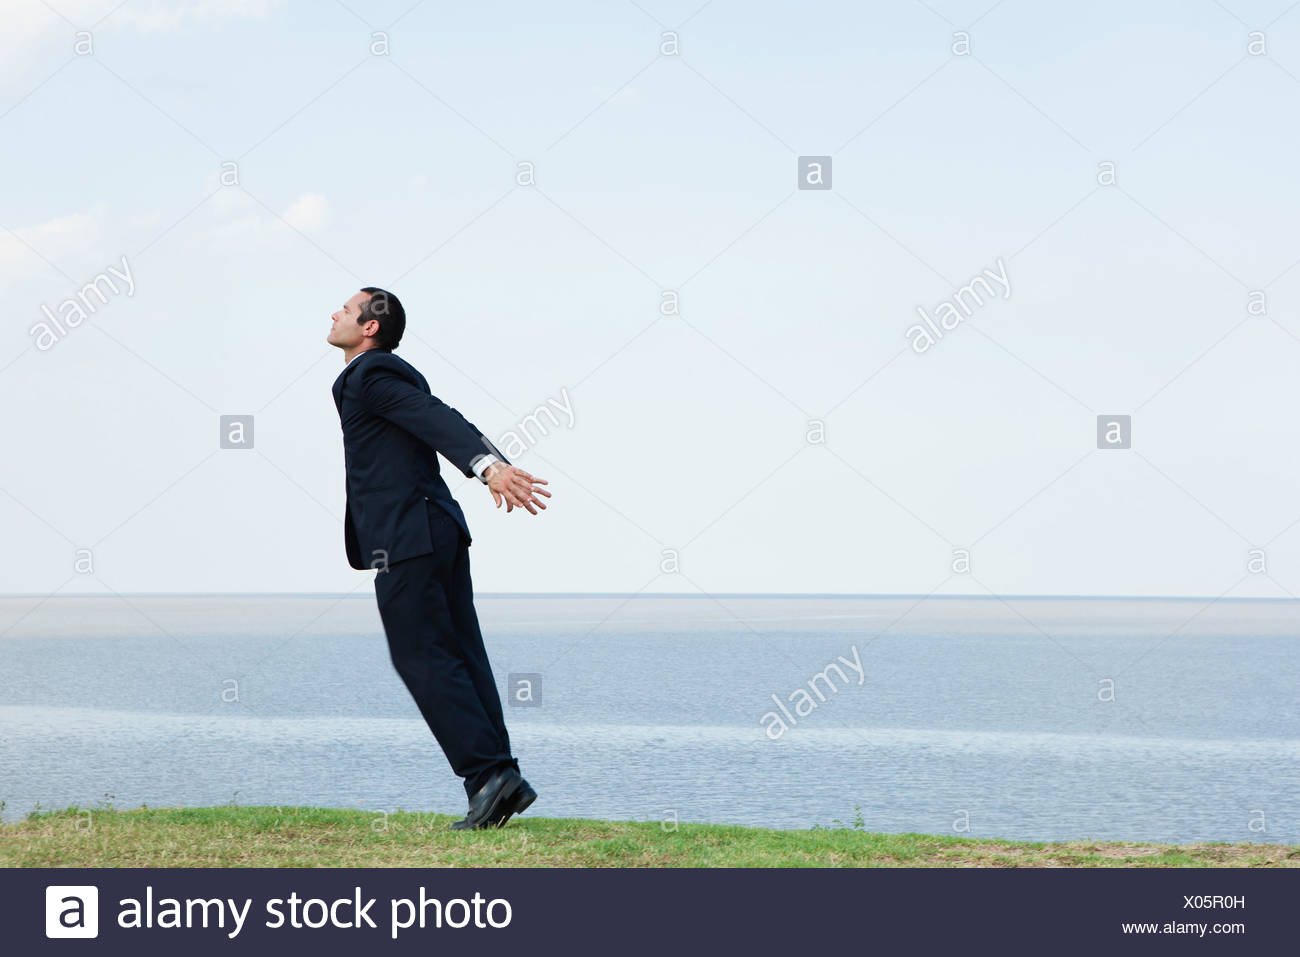 Businessman standing on tiptoe by sea, taking deep breath - Stock Image